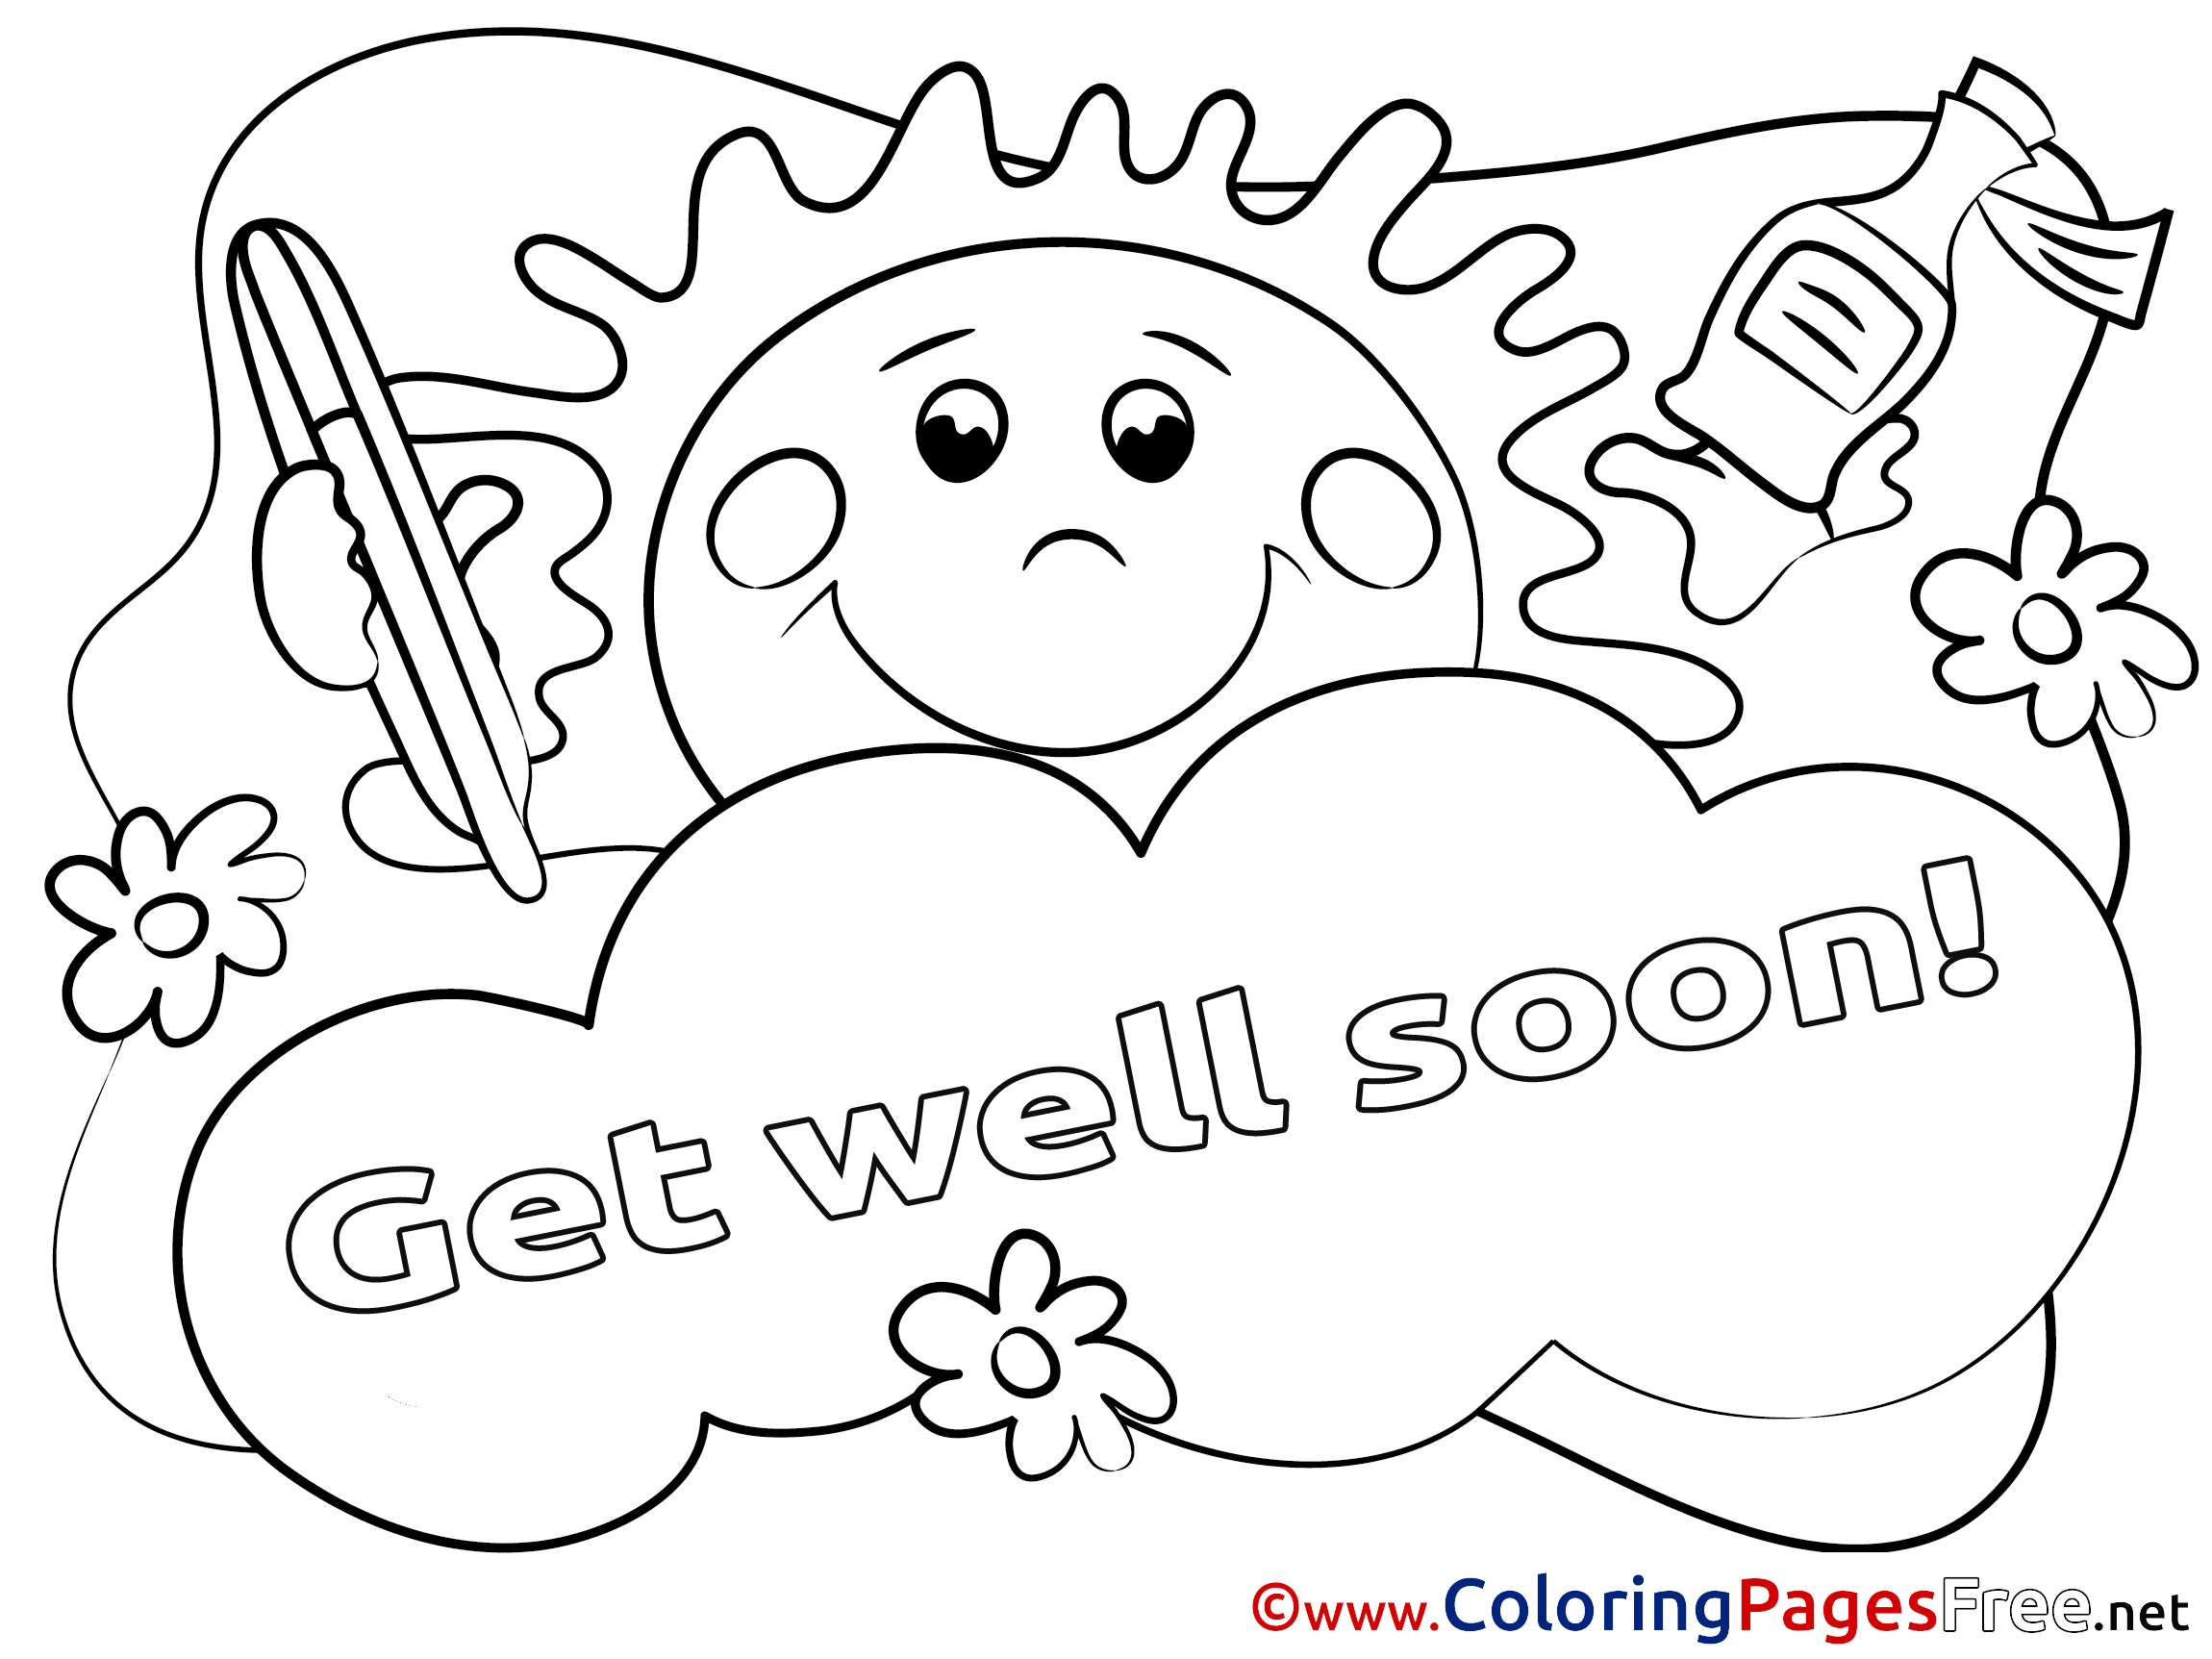 get well soon coloring pages to print 20 free get well soon coloring pages printable scribblefun coloring well get to print pages soon